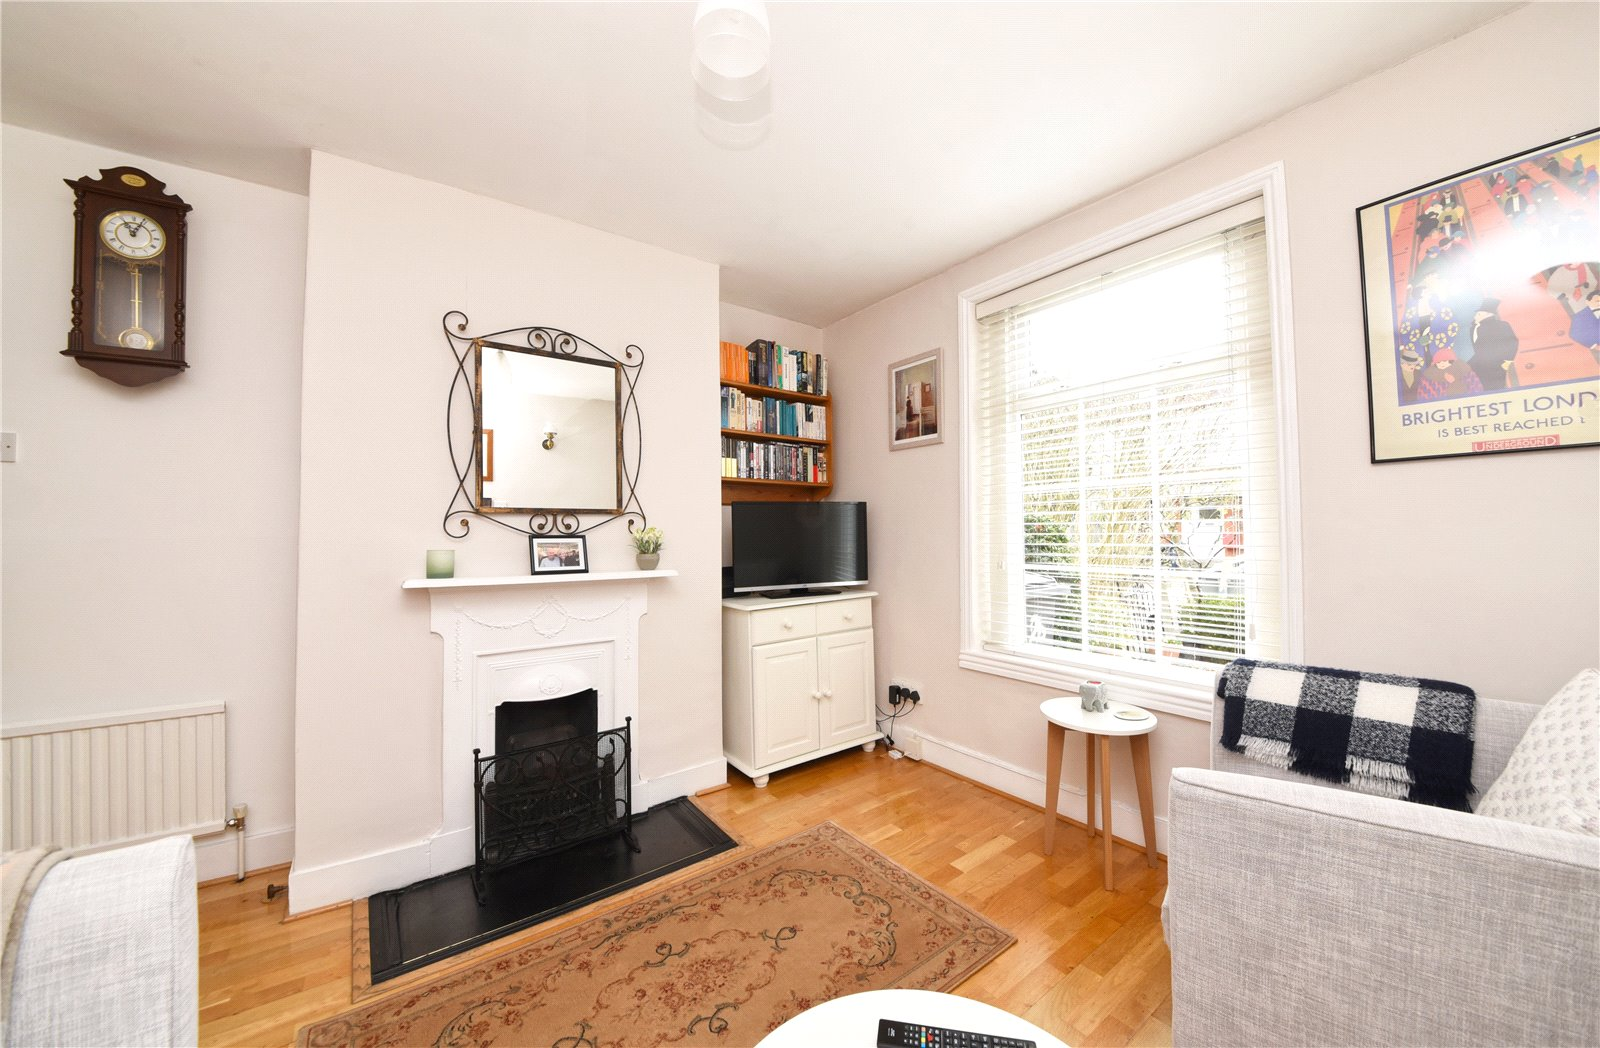 2 bed house for sale in London, N12 9JN 4